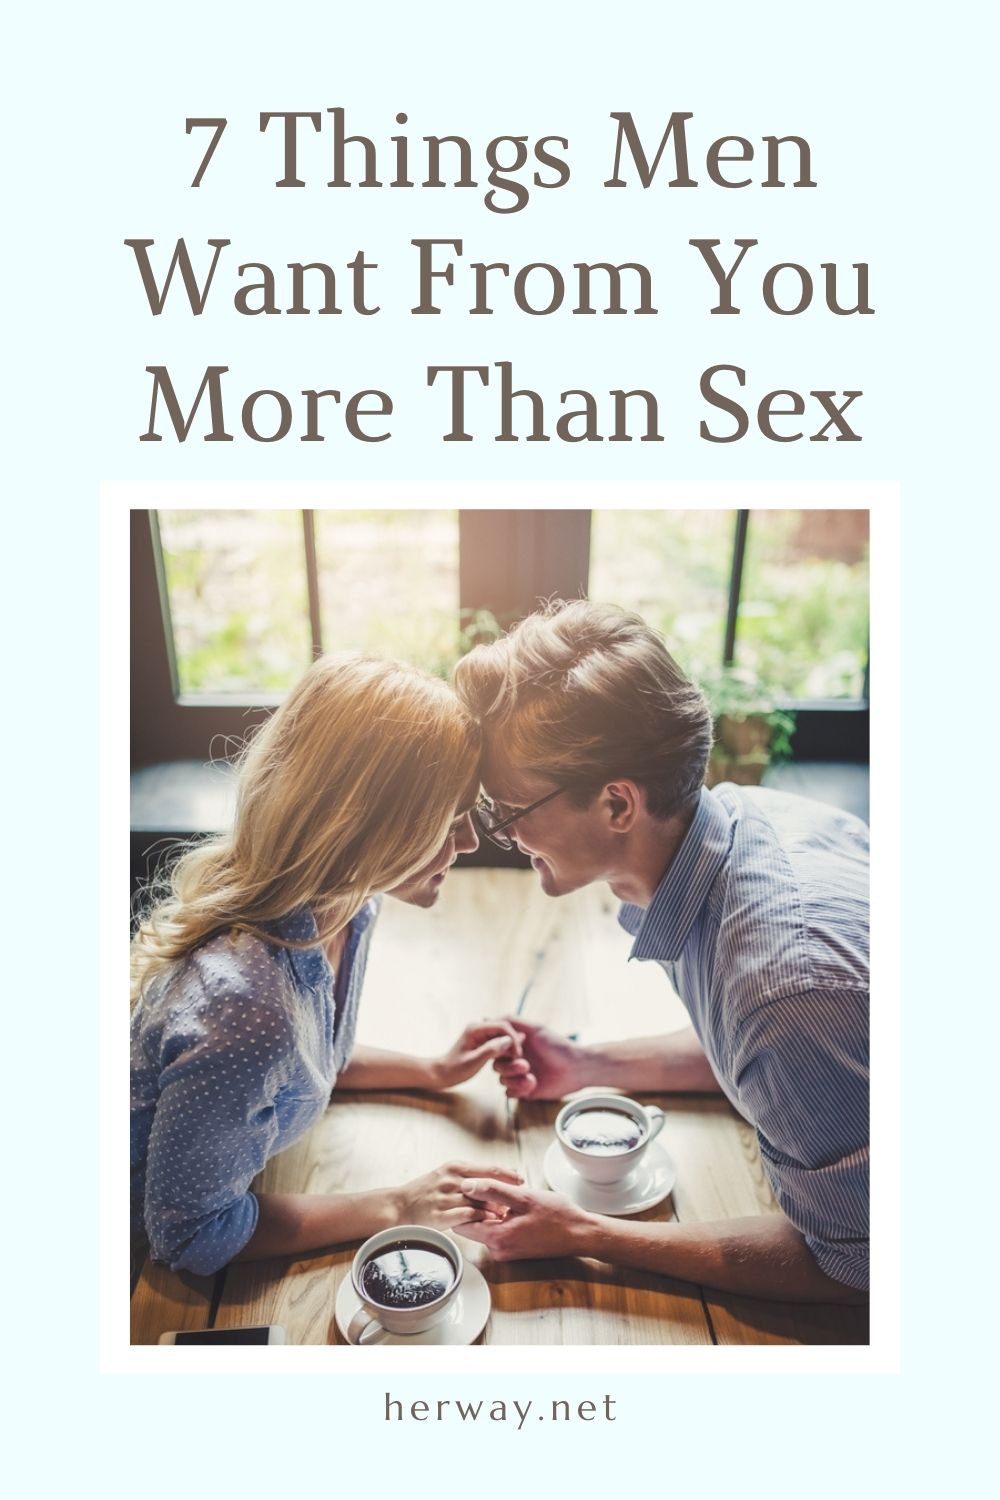 7 Things Men Want From You More Than Sex